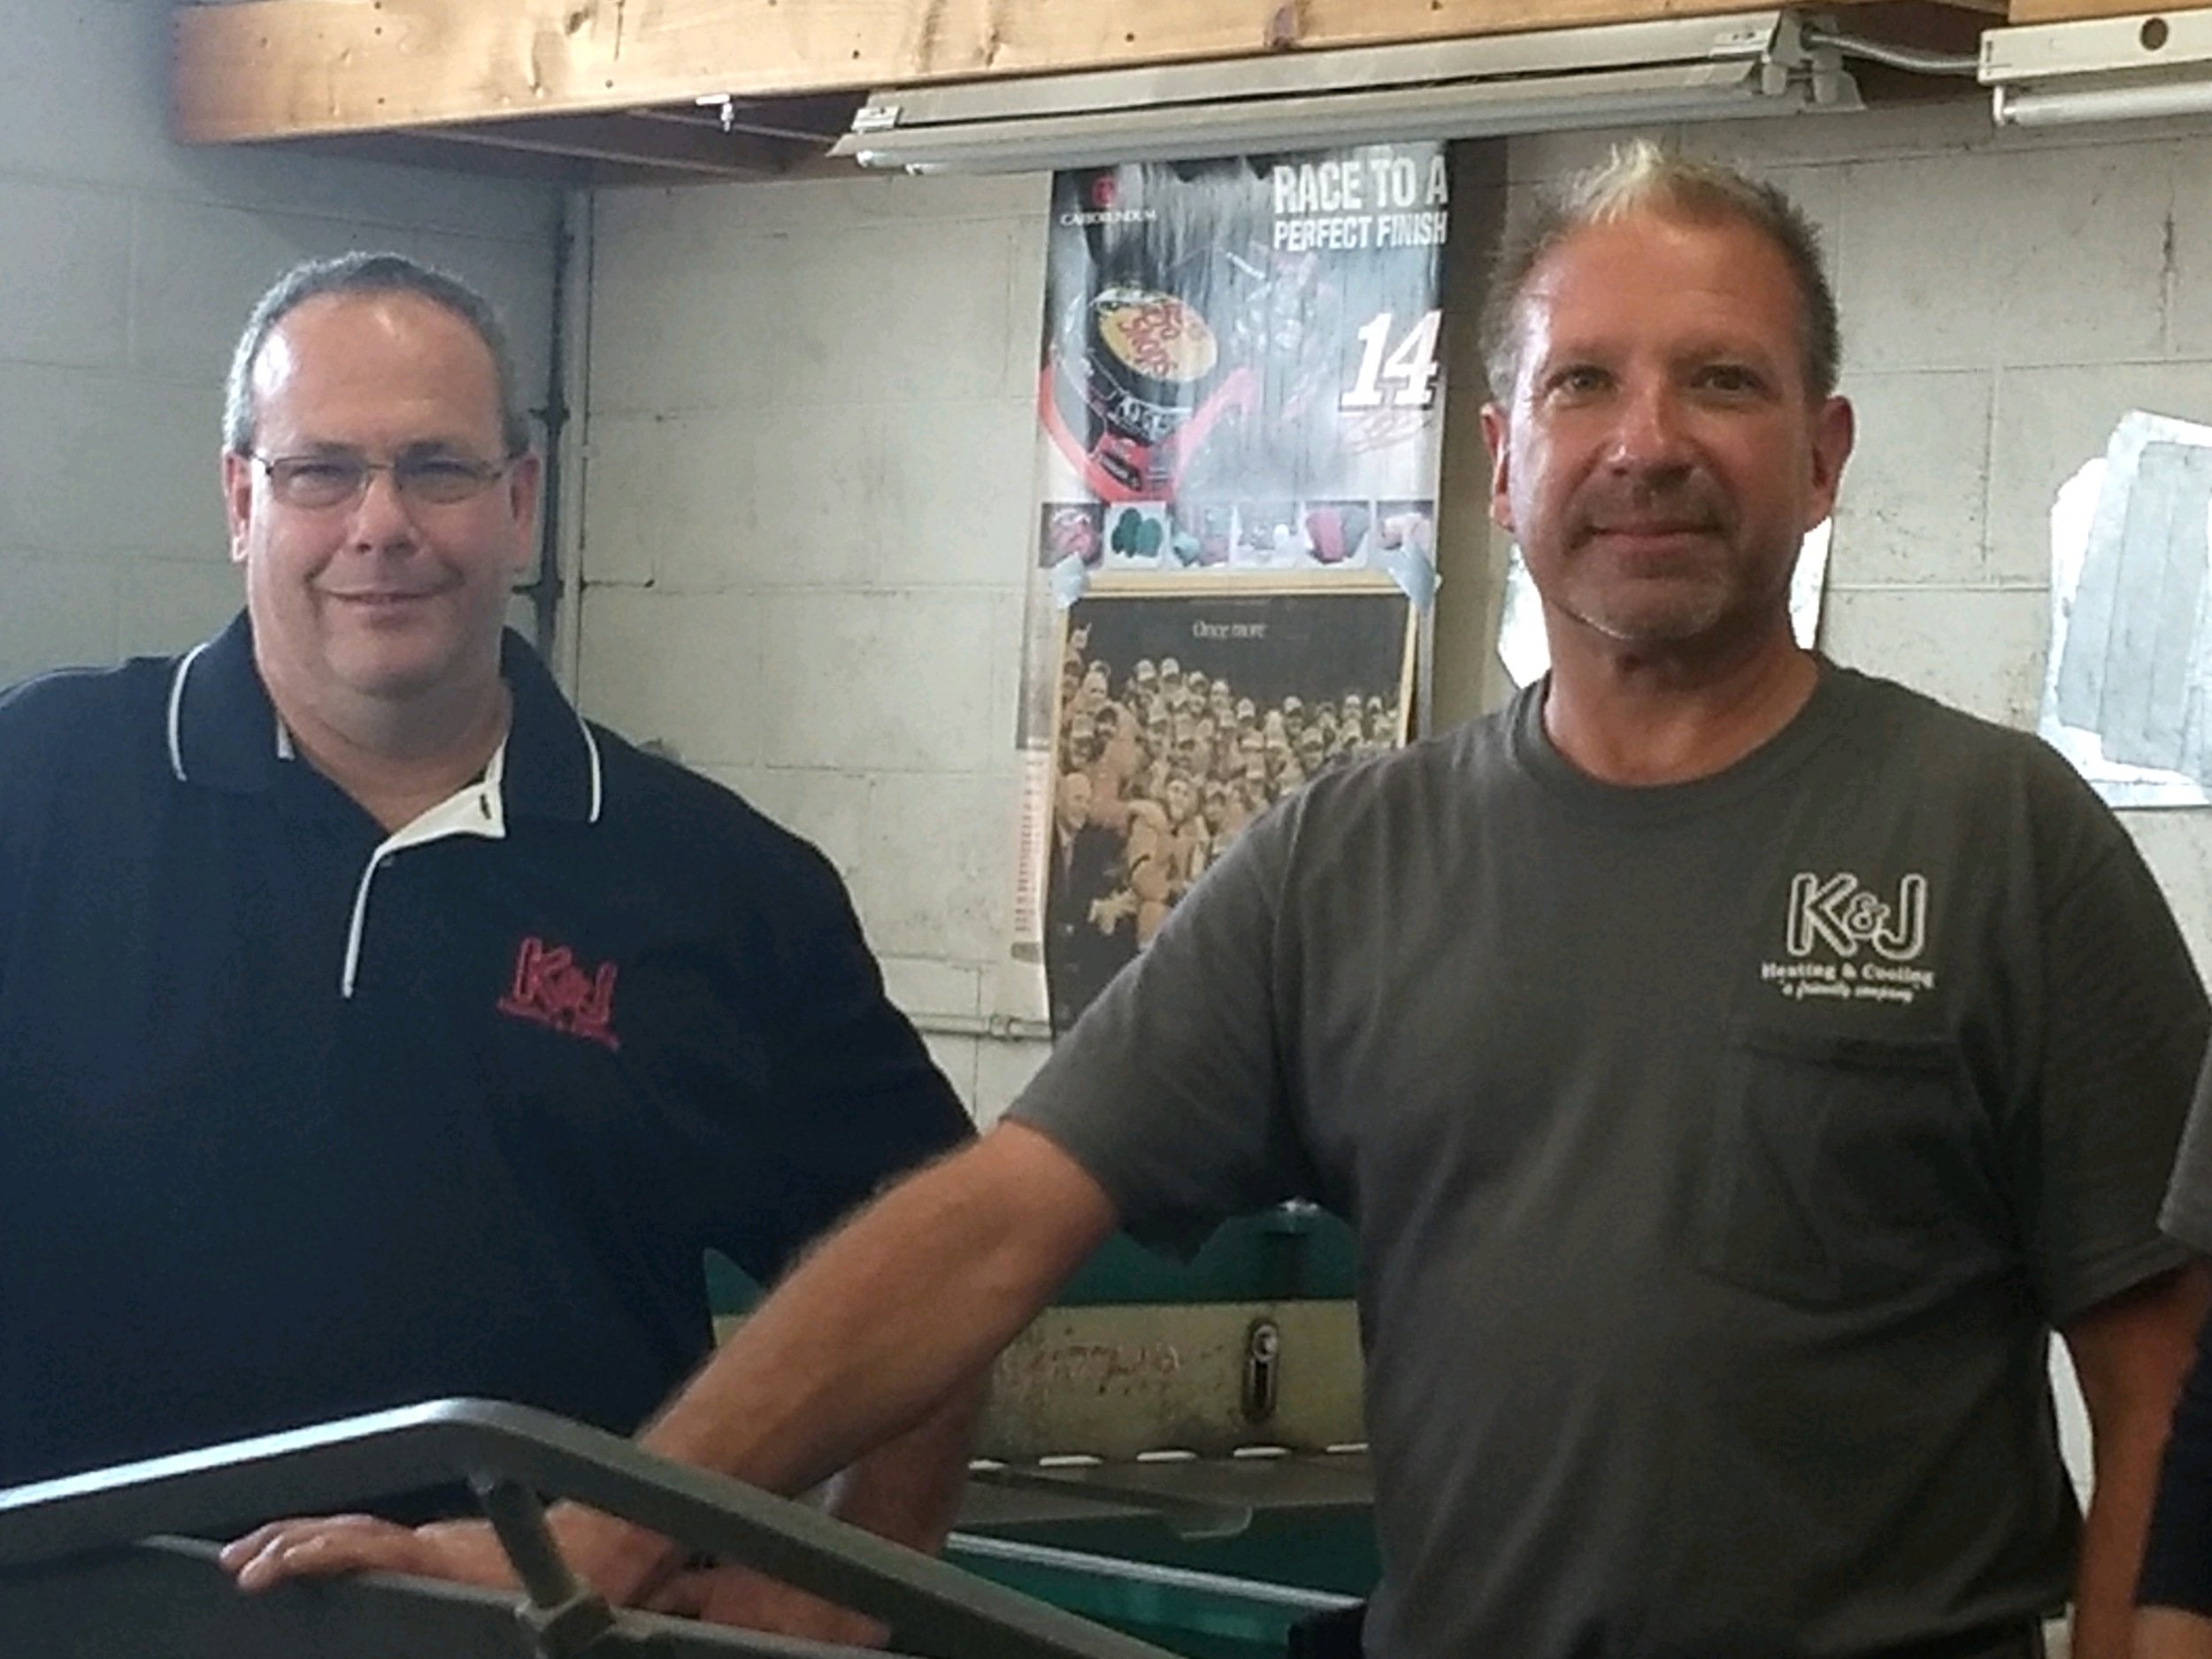 K & J Heating and Cooling, Inc. Owners Kip and Jeff by Fully Stocked HVAC Repair Service Vehicle